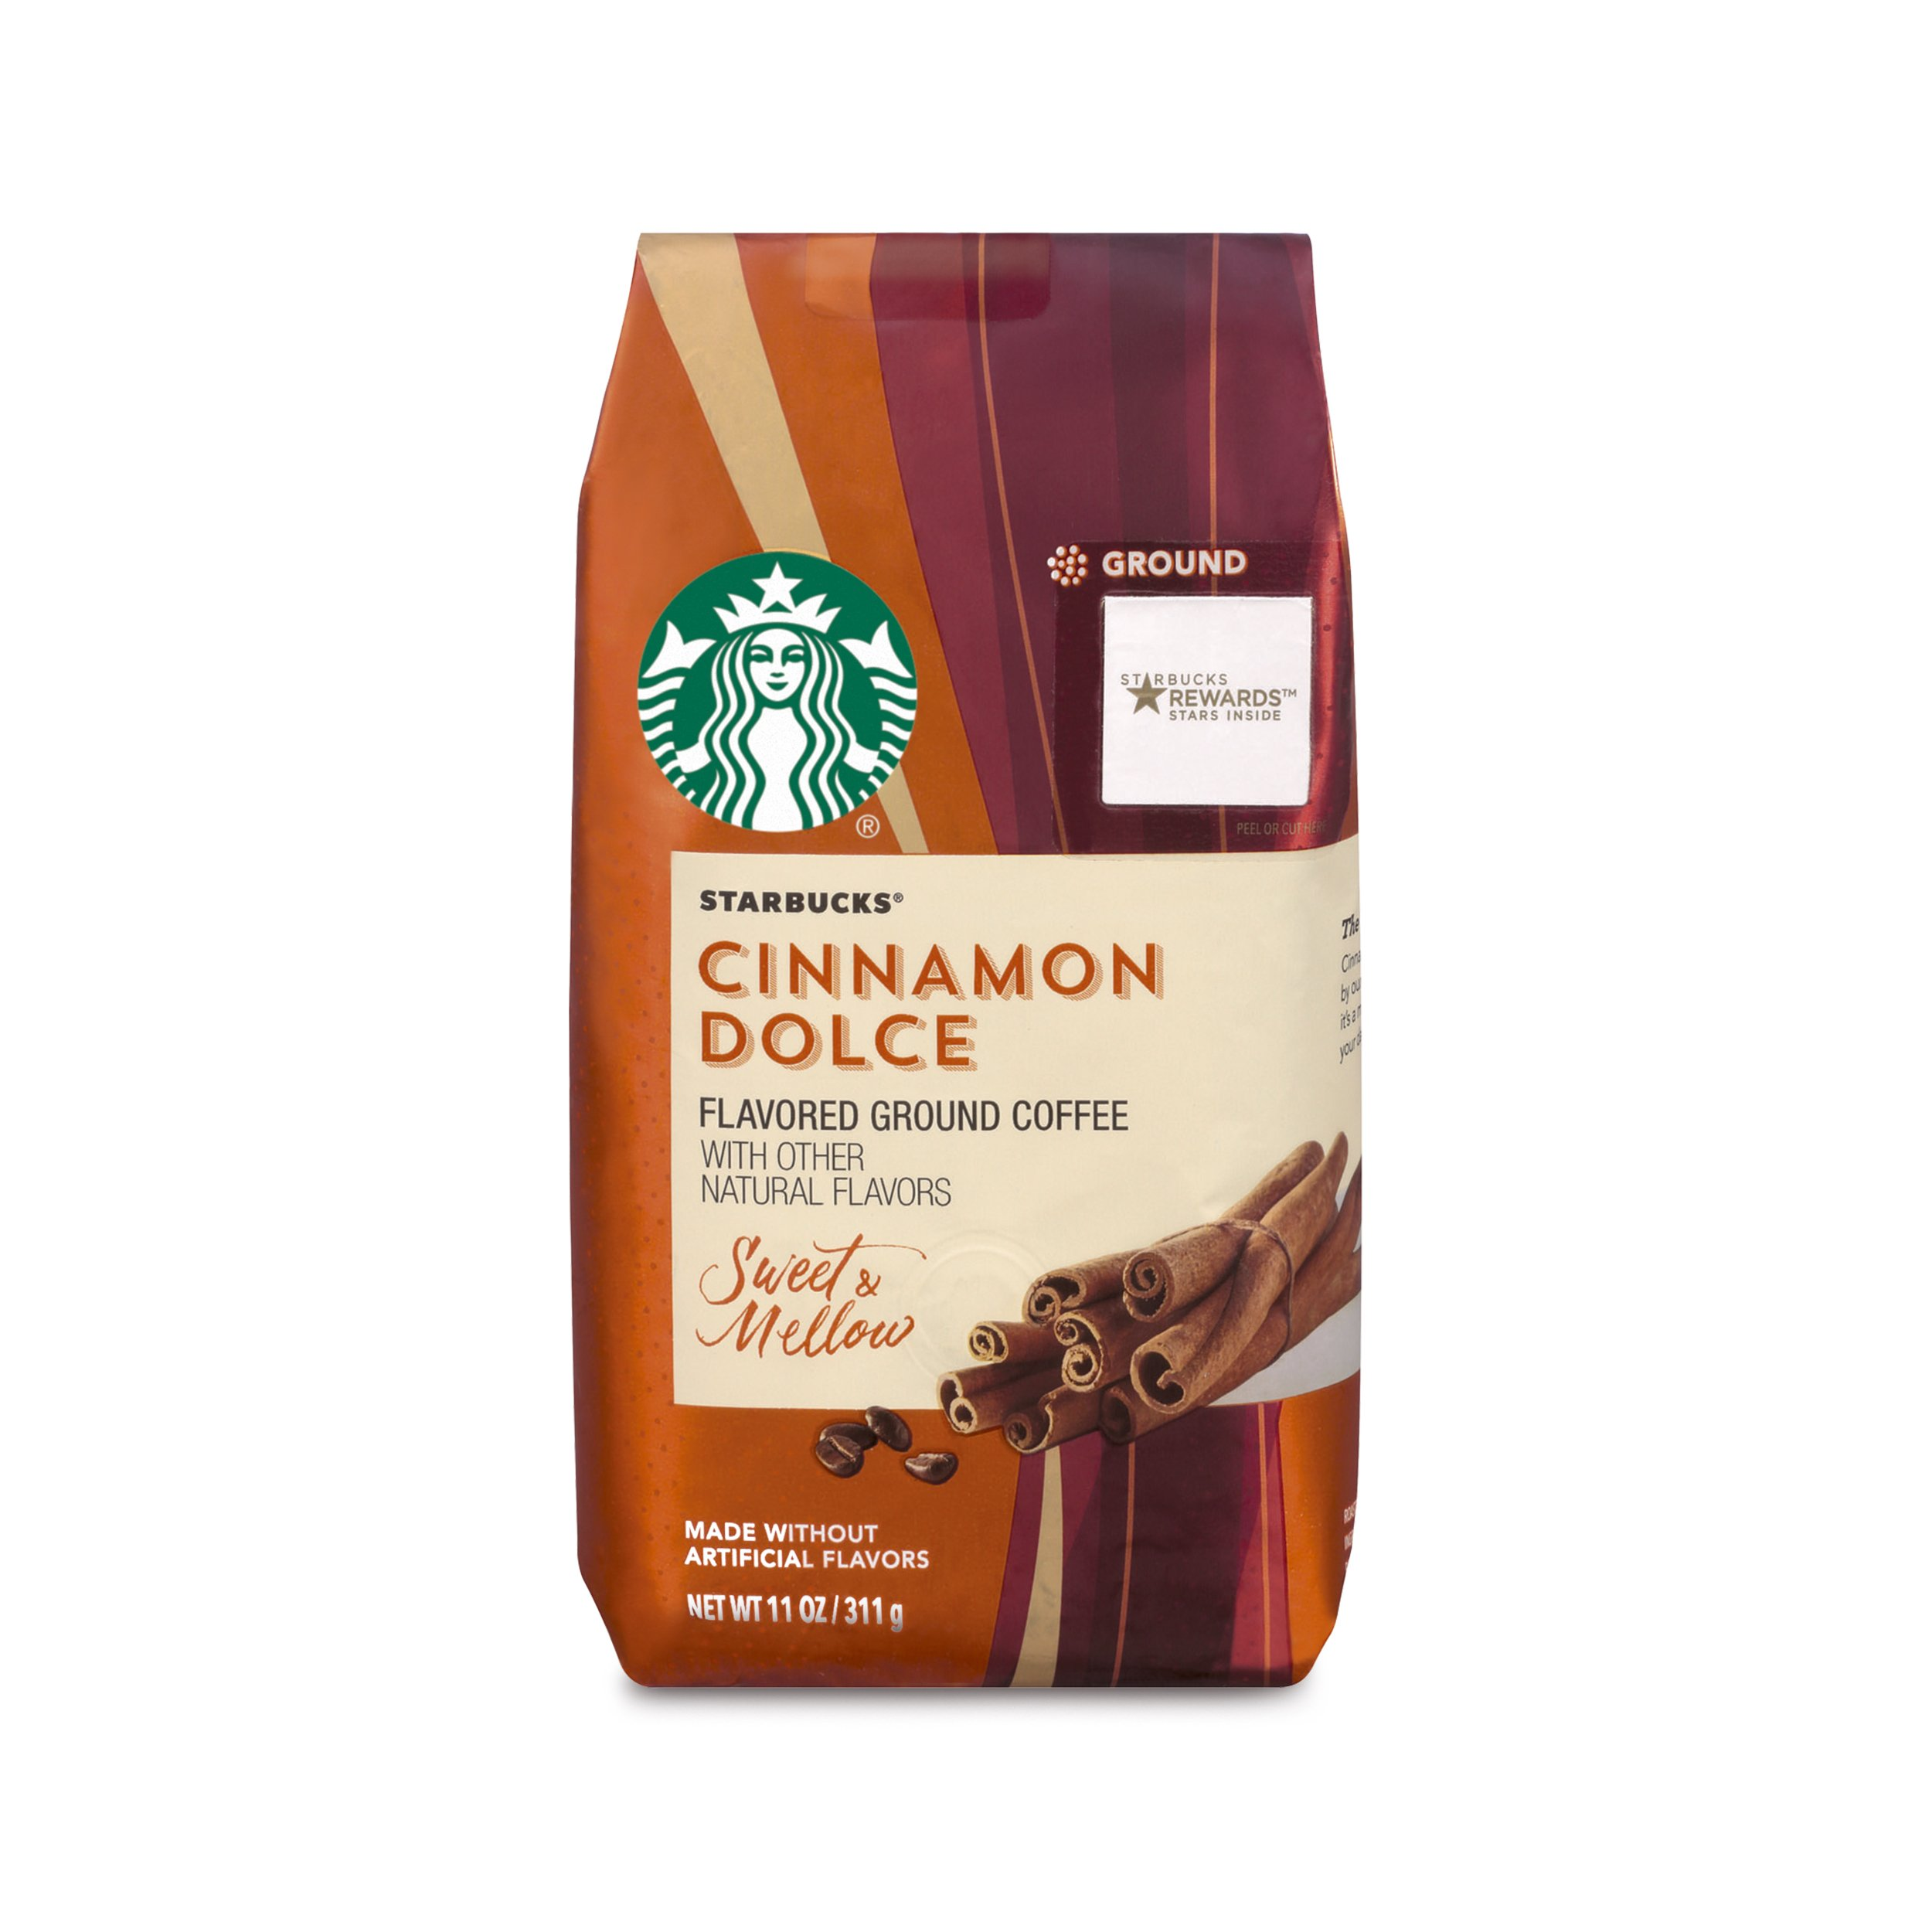 Starbucks Cinnamon Dolce Flavored Blonde Light Roast Ground Coffee, 11-Ounce Bag (Pack of 6) by Starbucks